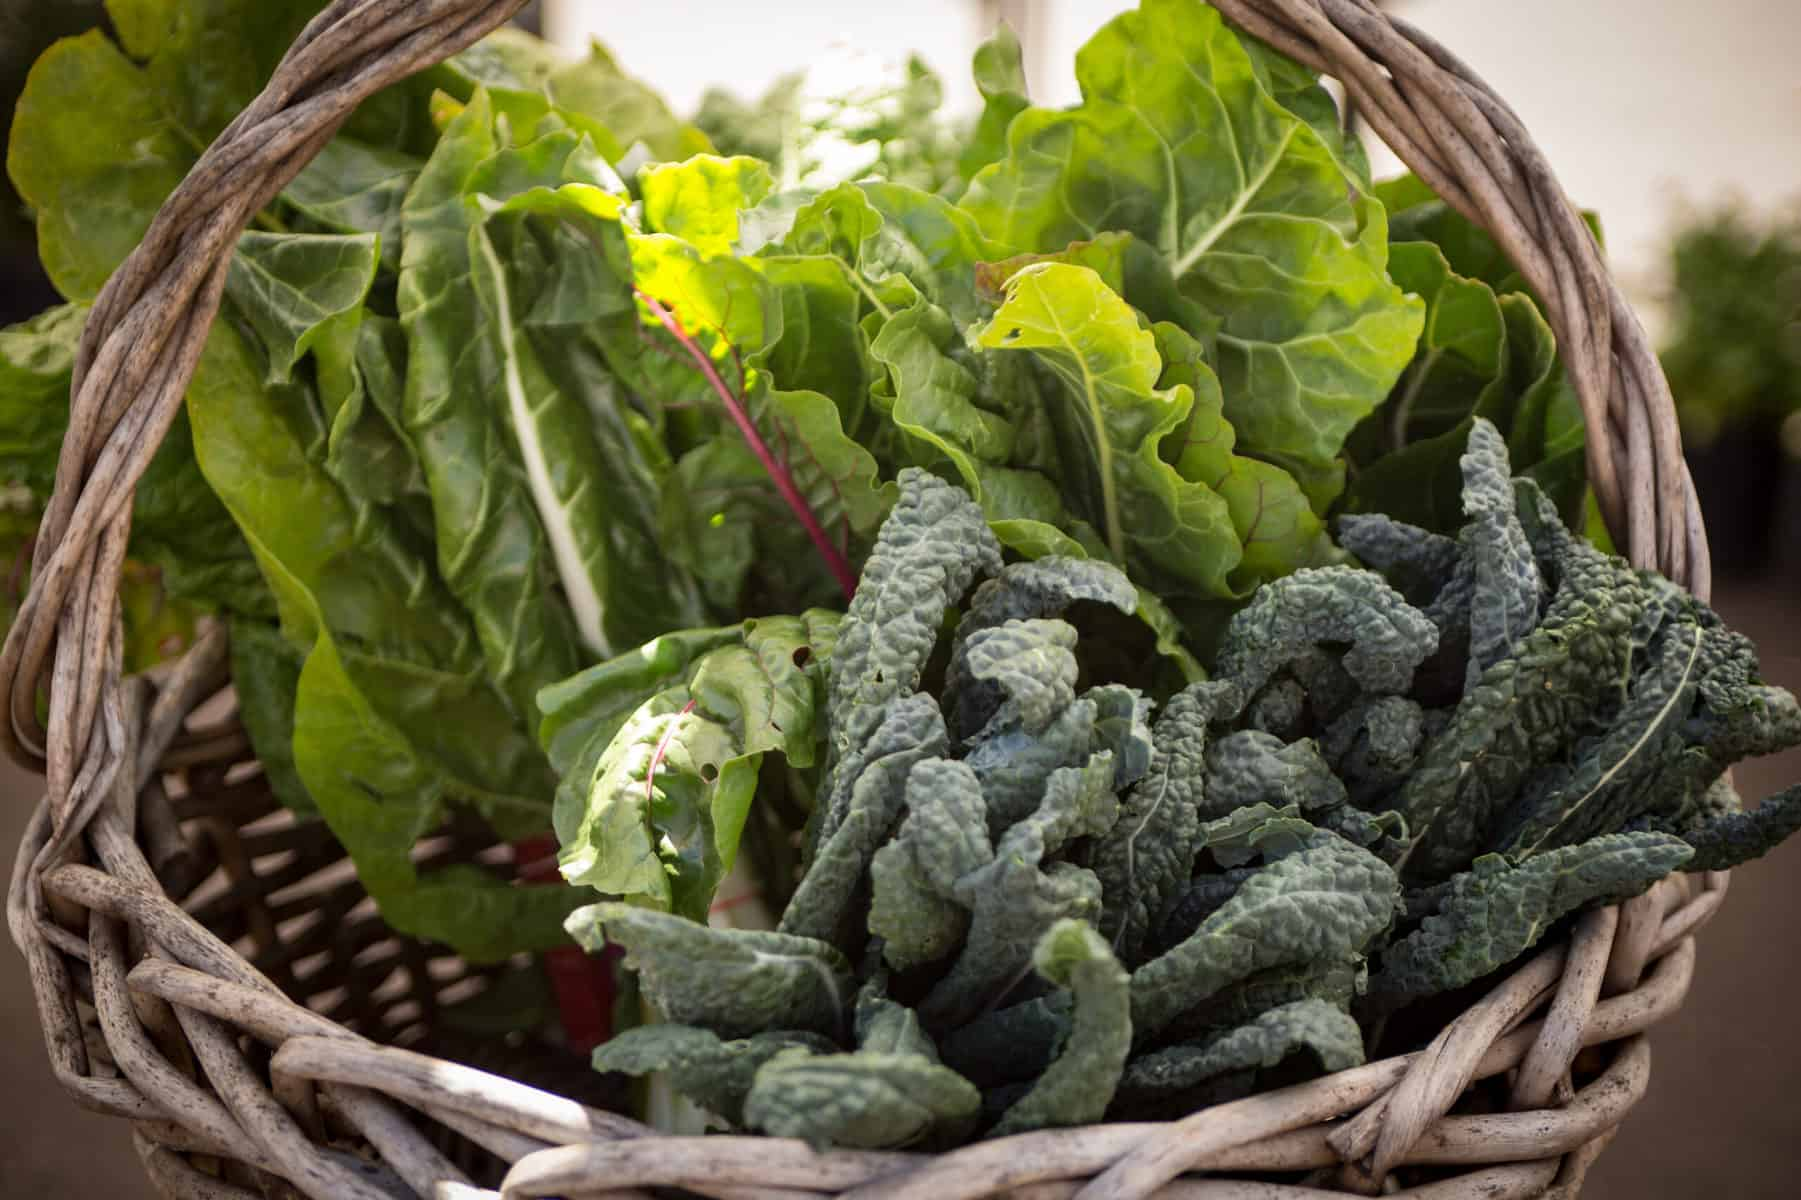 Think Leafy Greens for Spring!